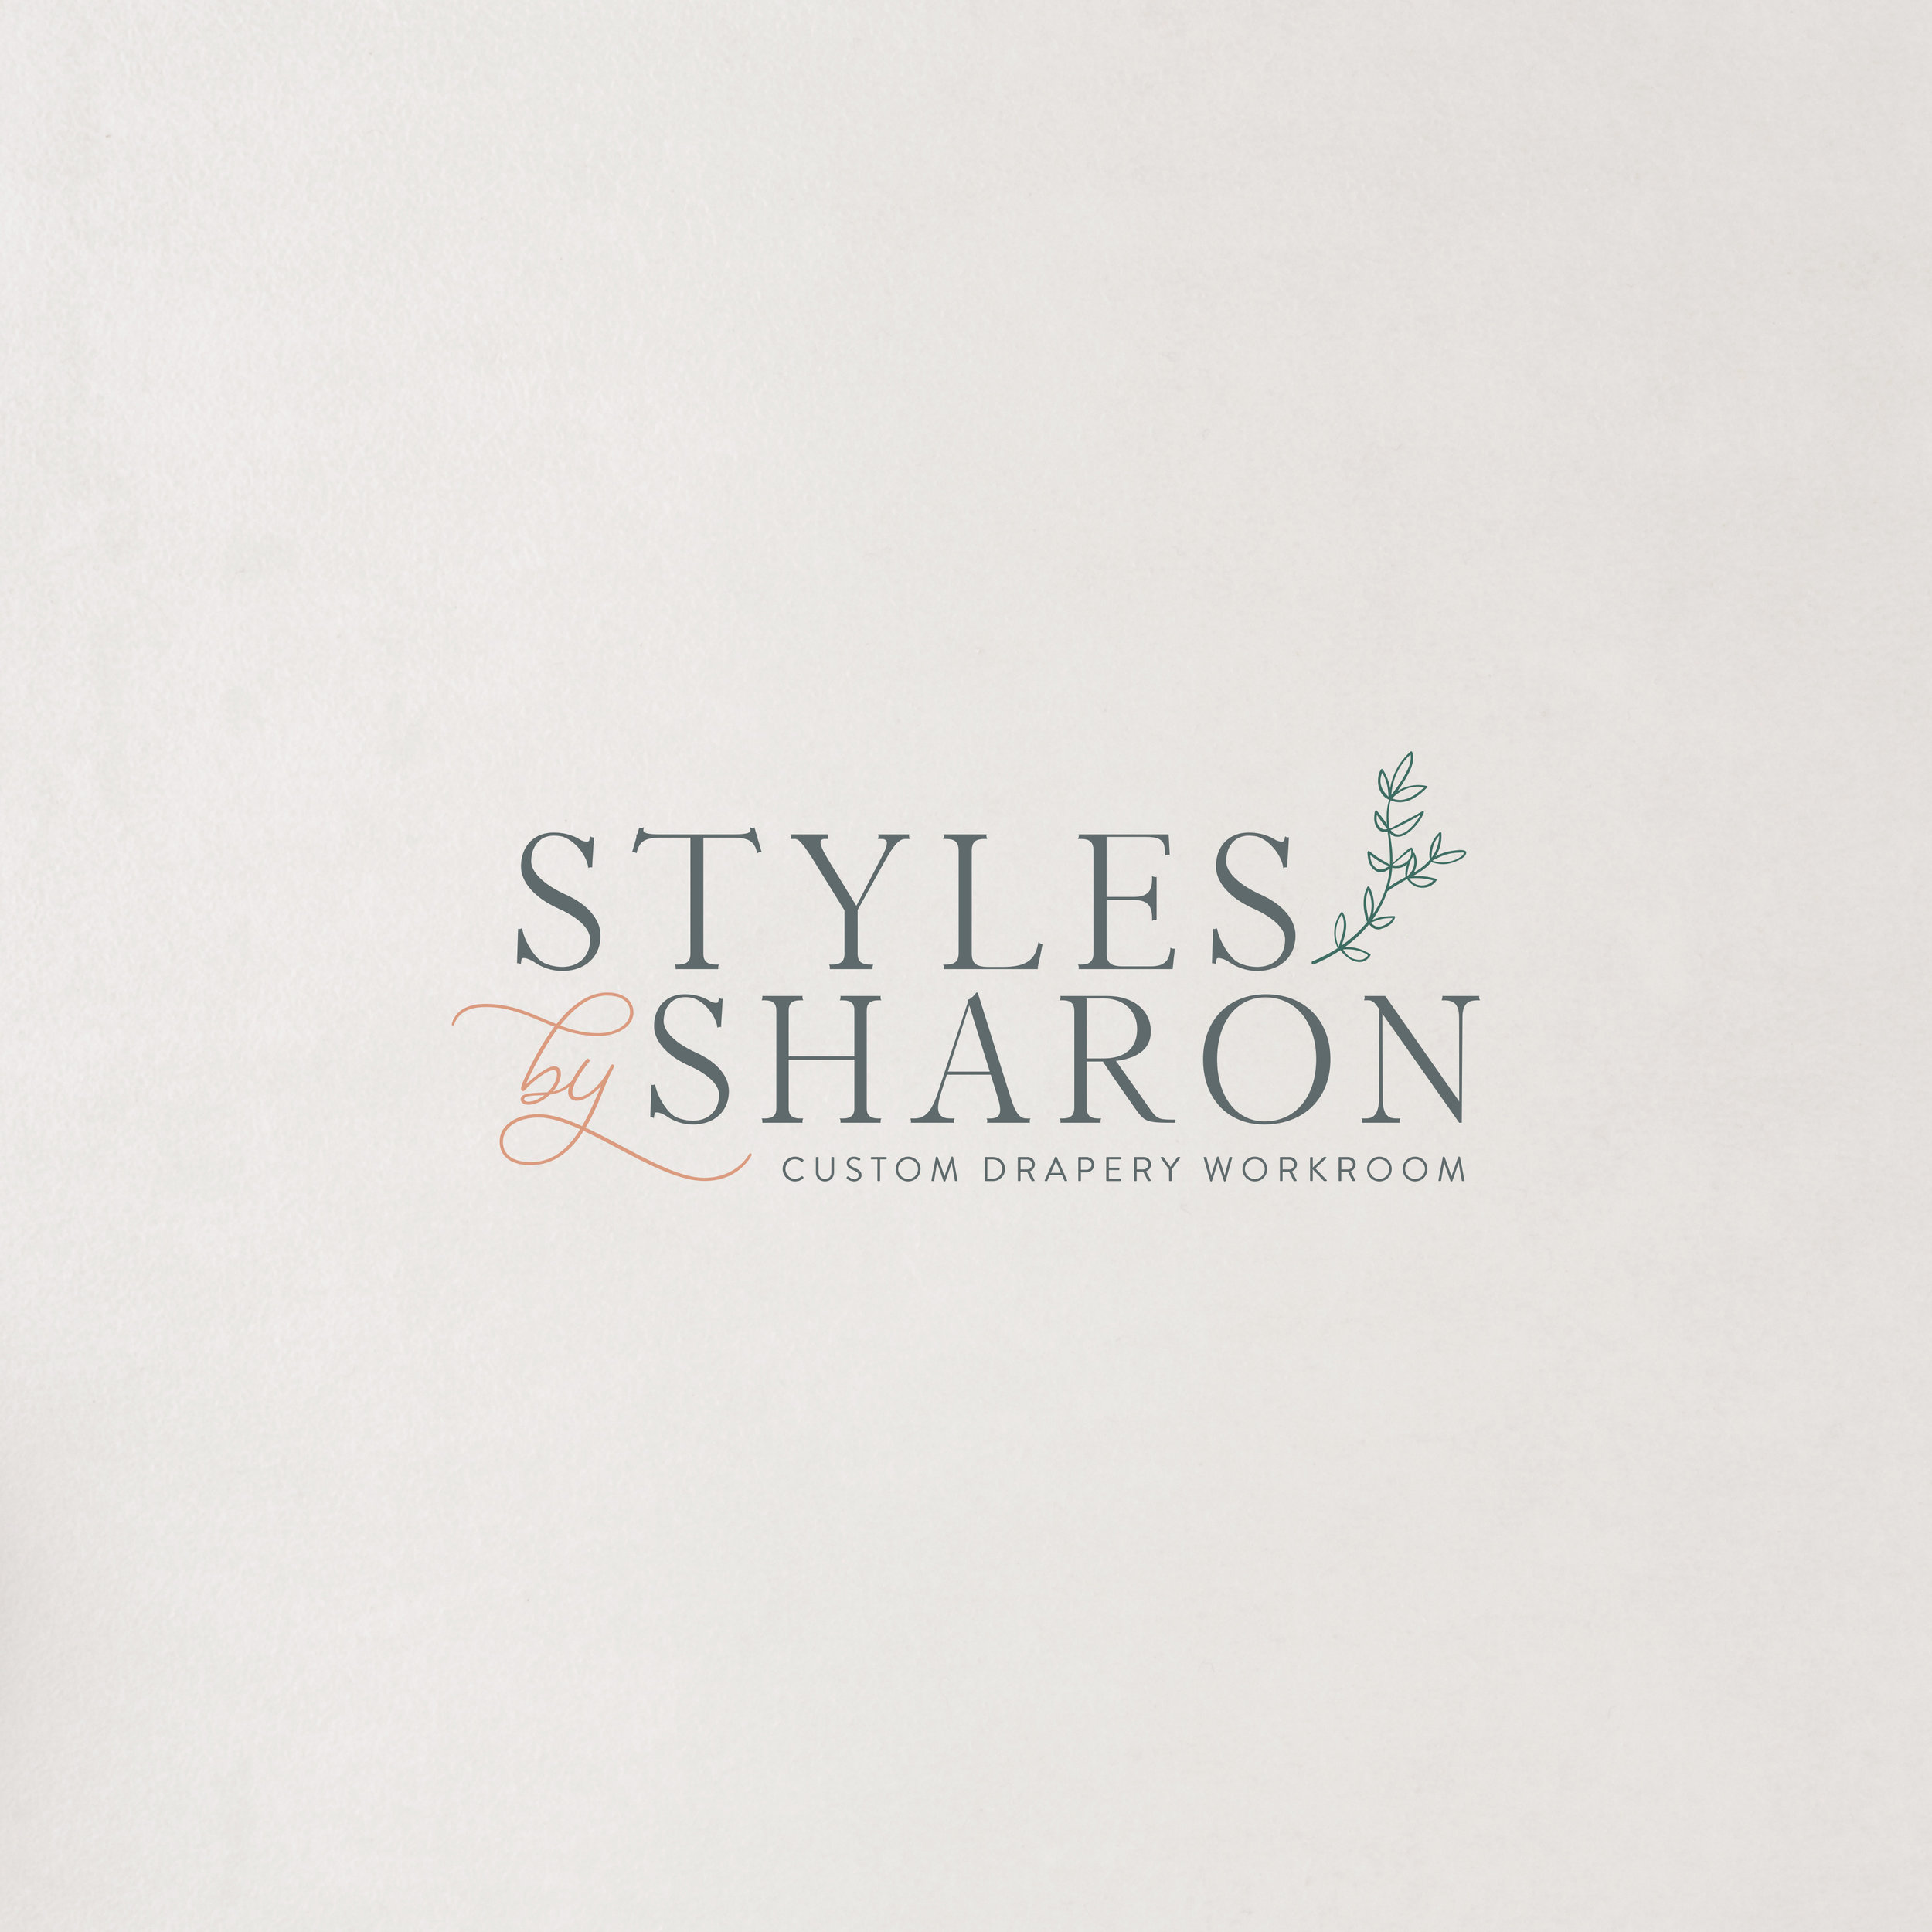 Styles by Sharon | Branding by Jula Paper Co.